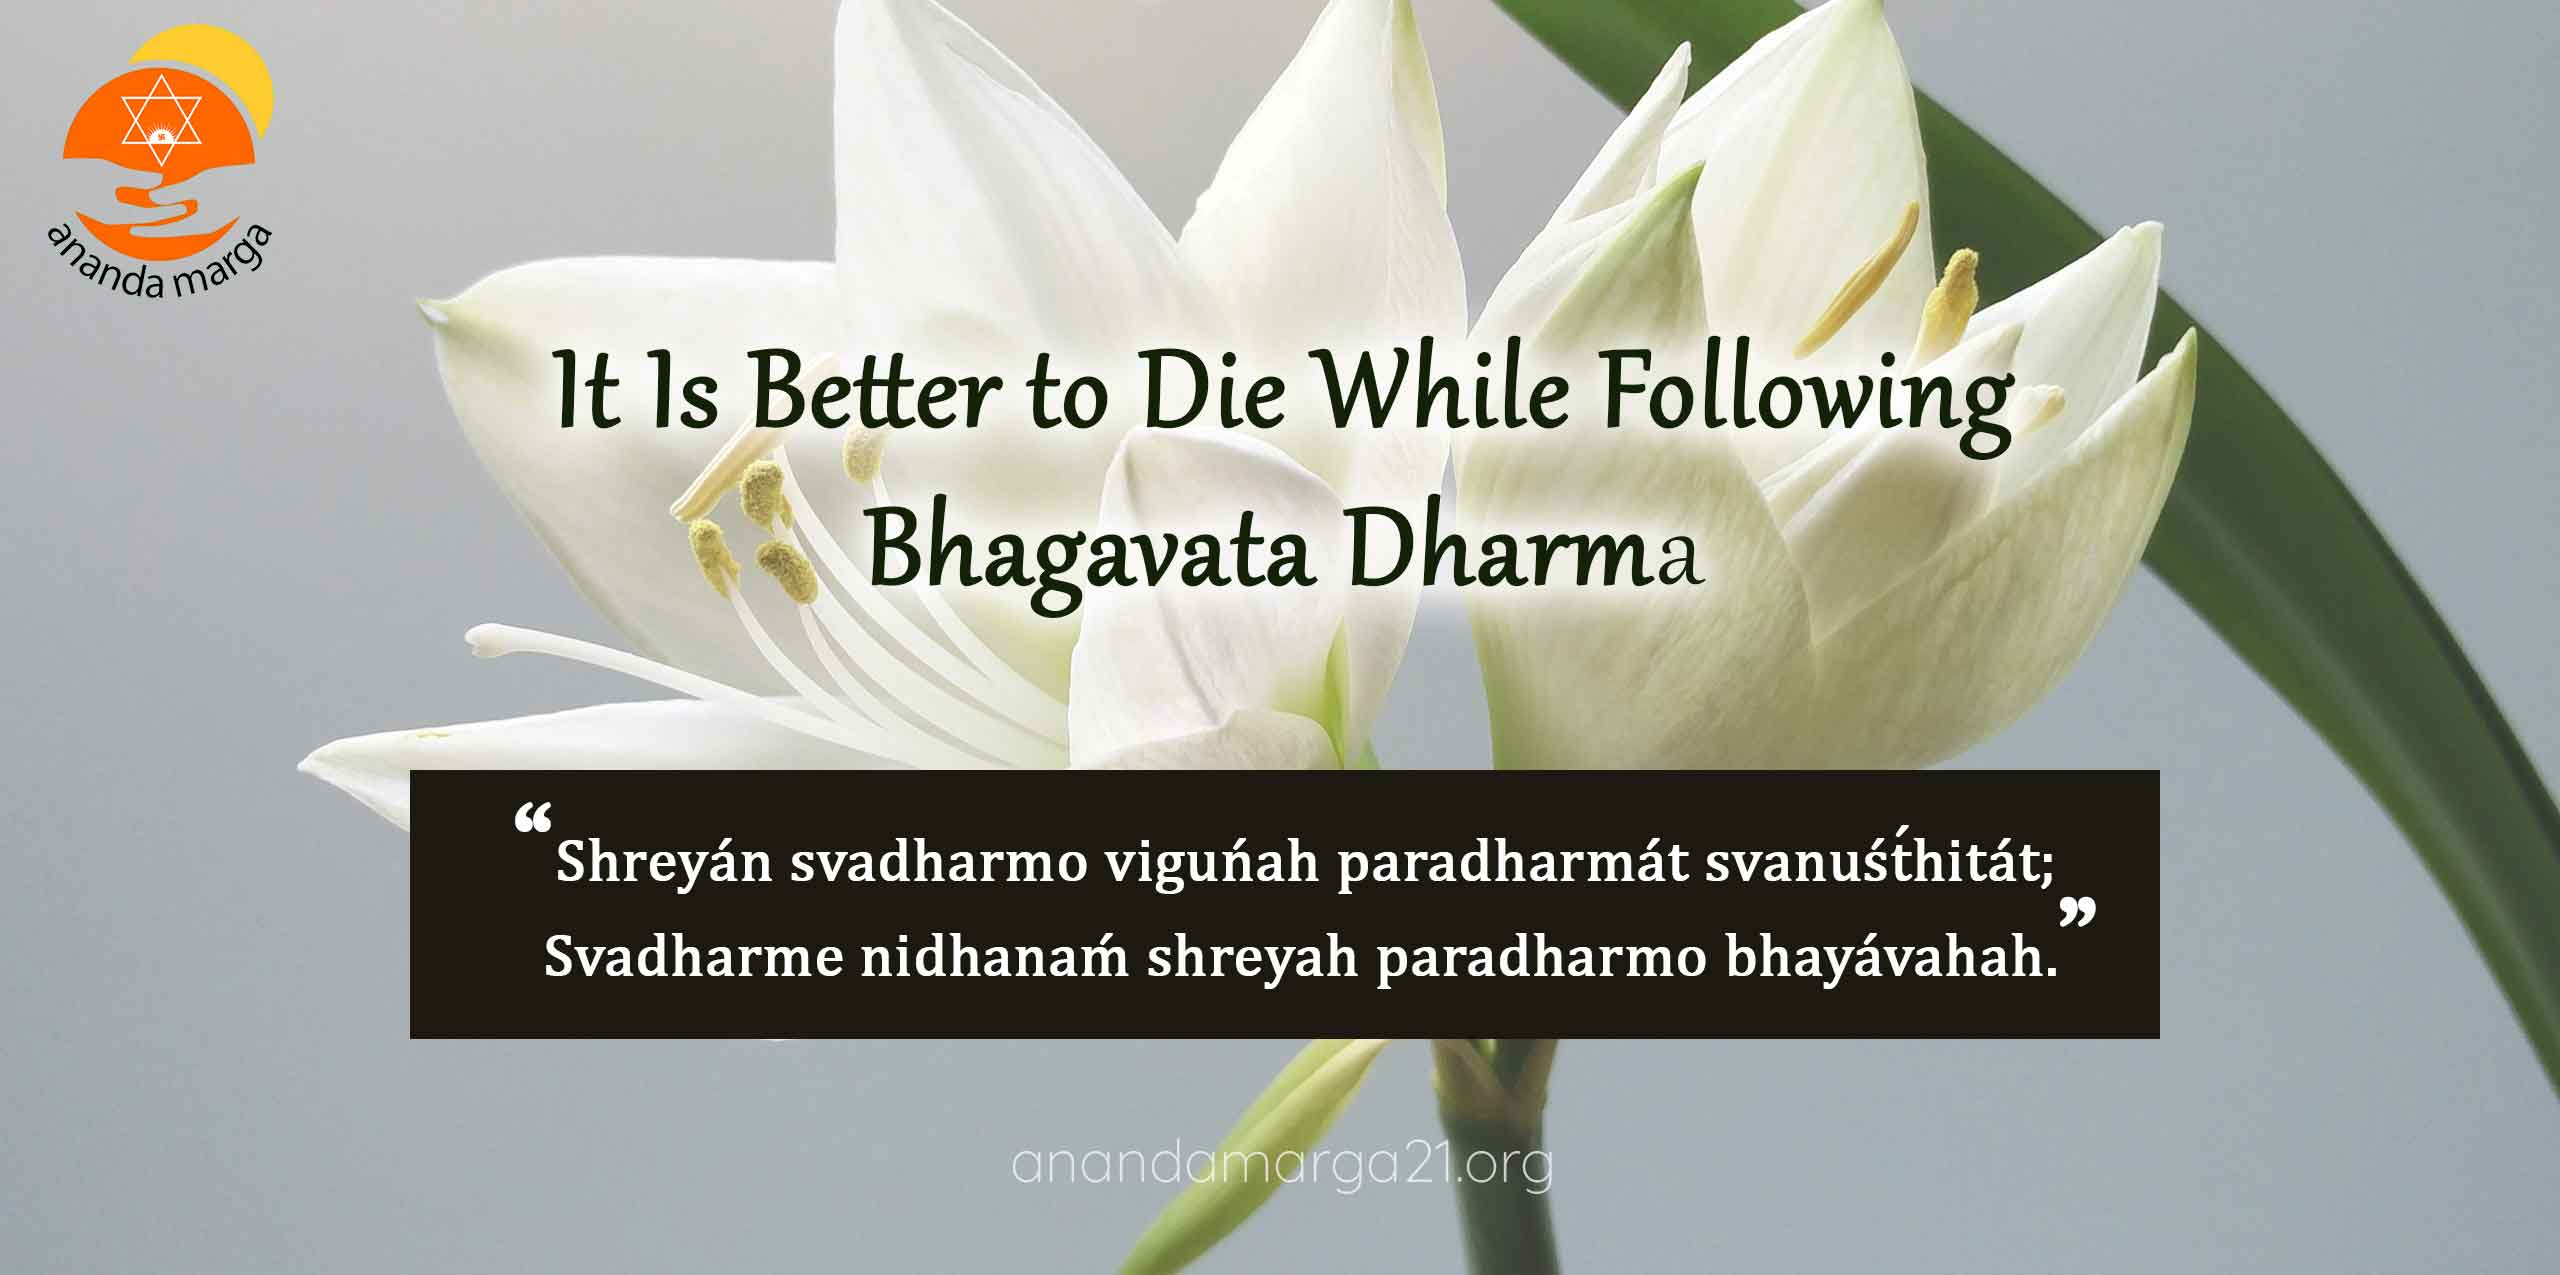 Anandamarga-Better-to-Die